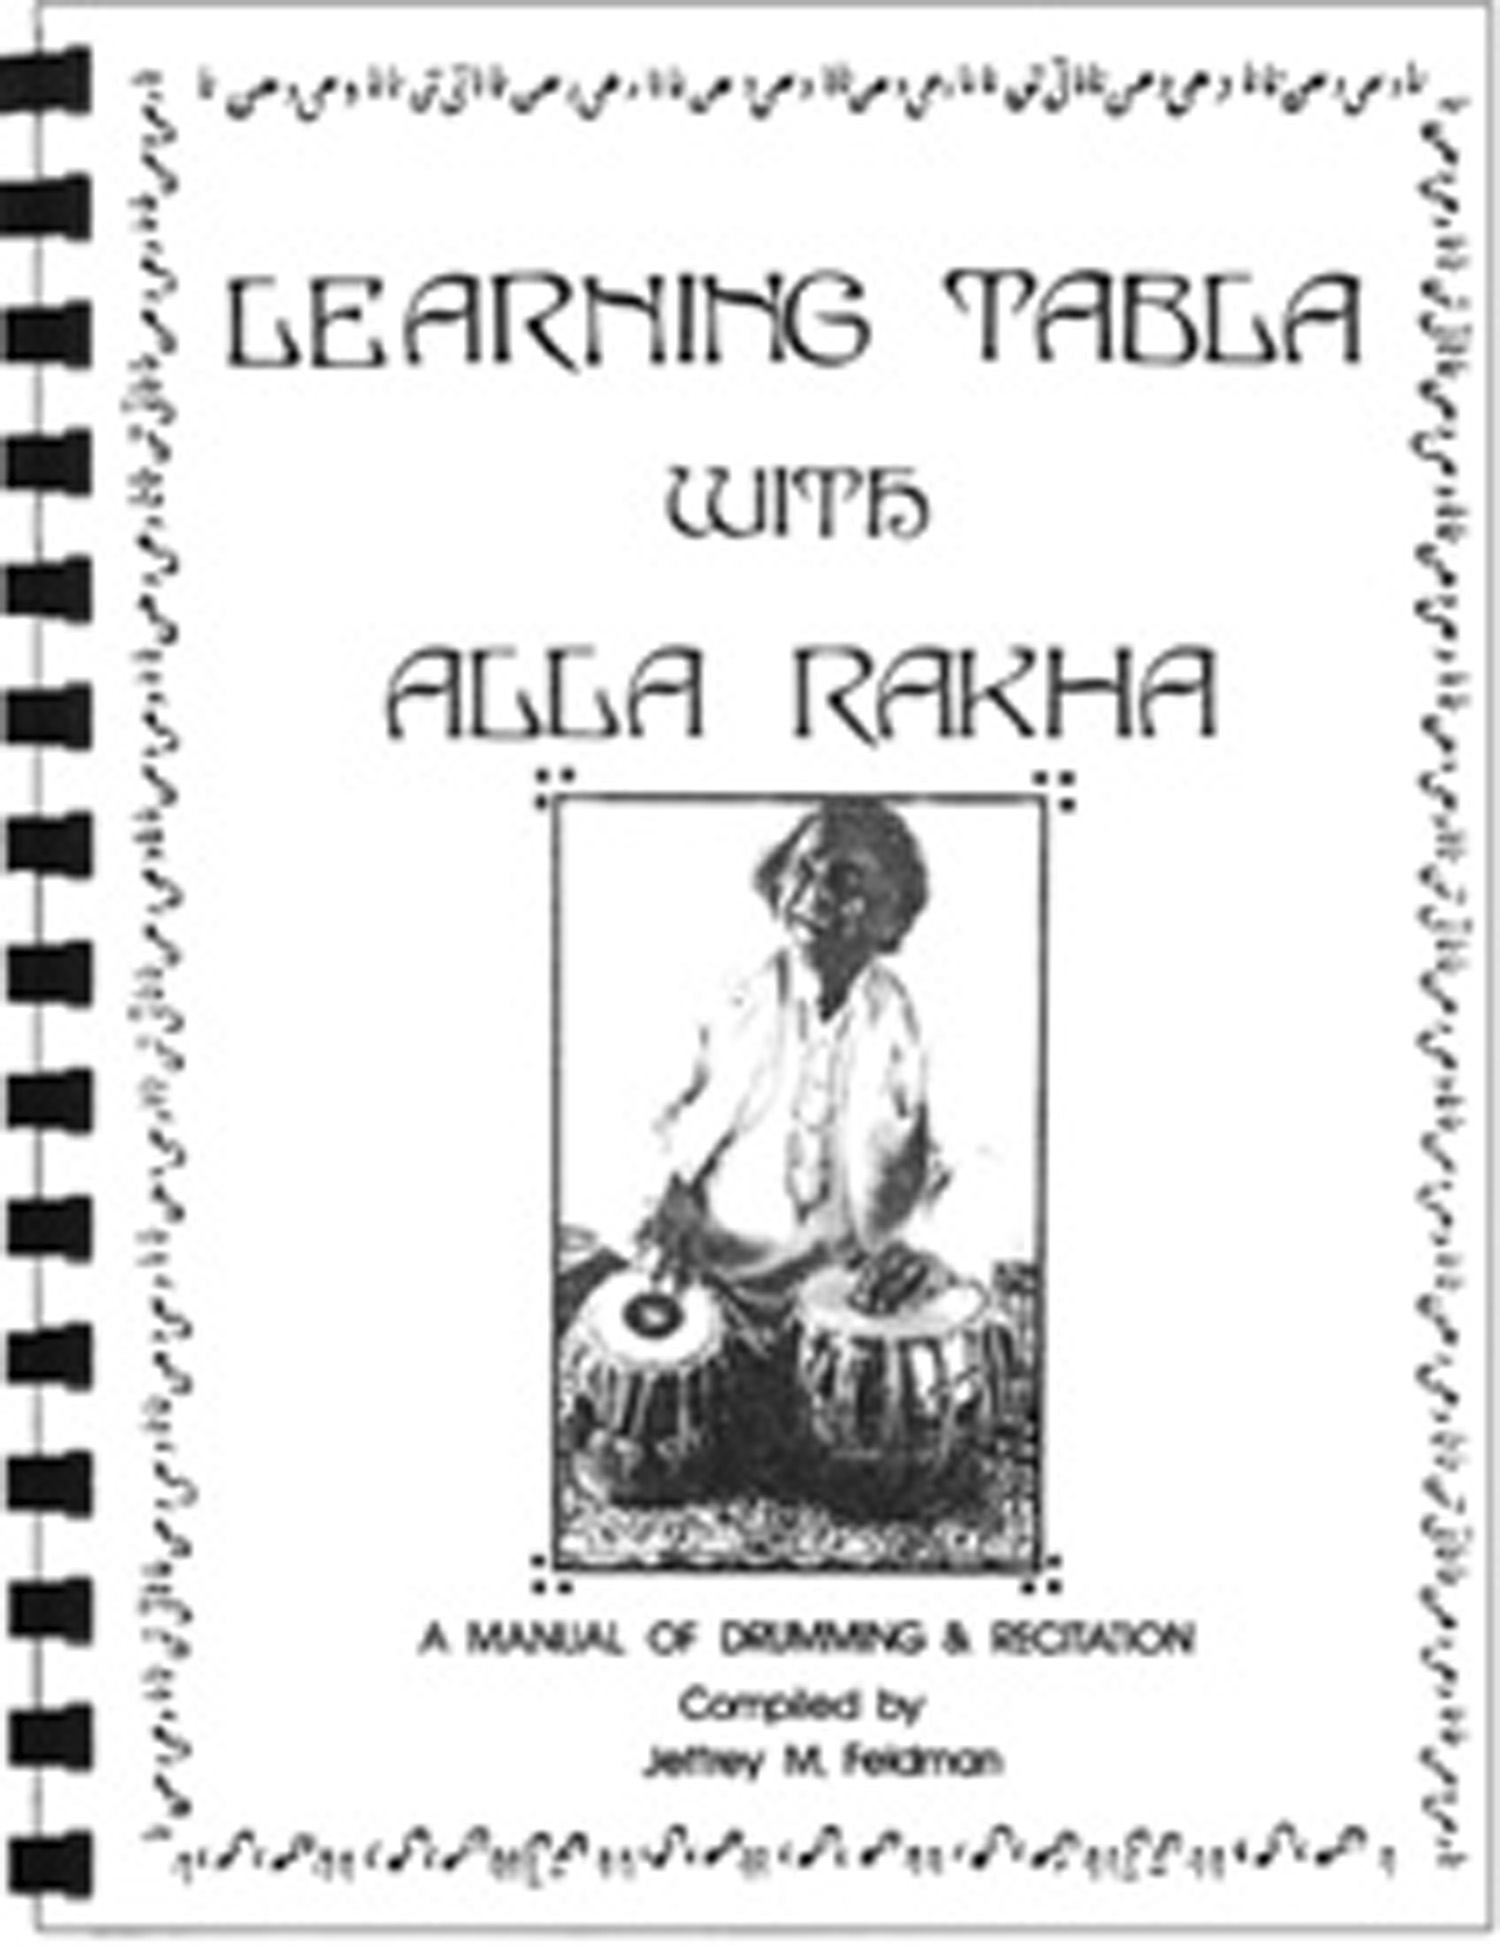 "Learning Tabla with Alla Rakha             $24.95 plus shipping and handling. 6½"" x 8½"", 102 pages, spiral bound, with audio CD and      free access to online videos     ."